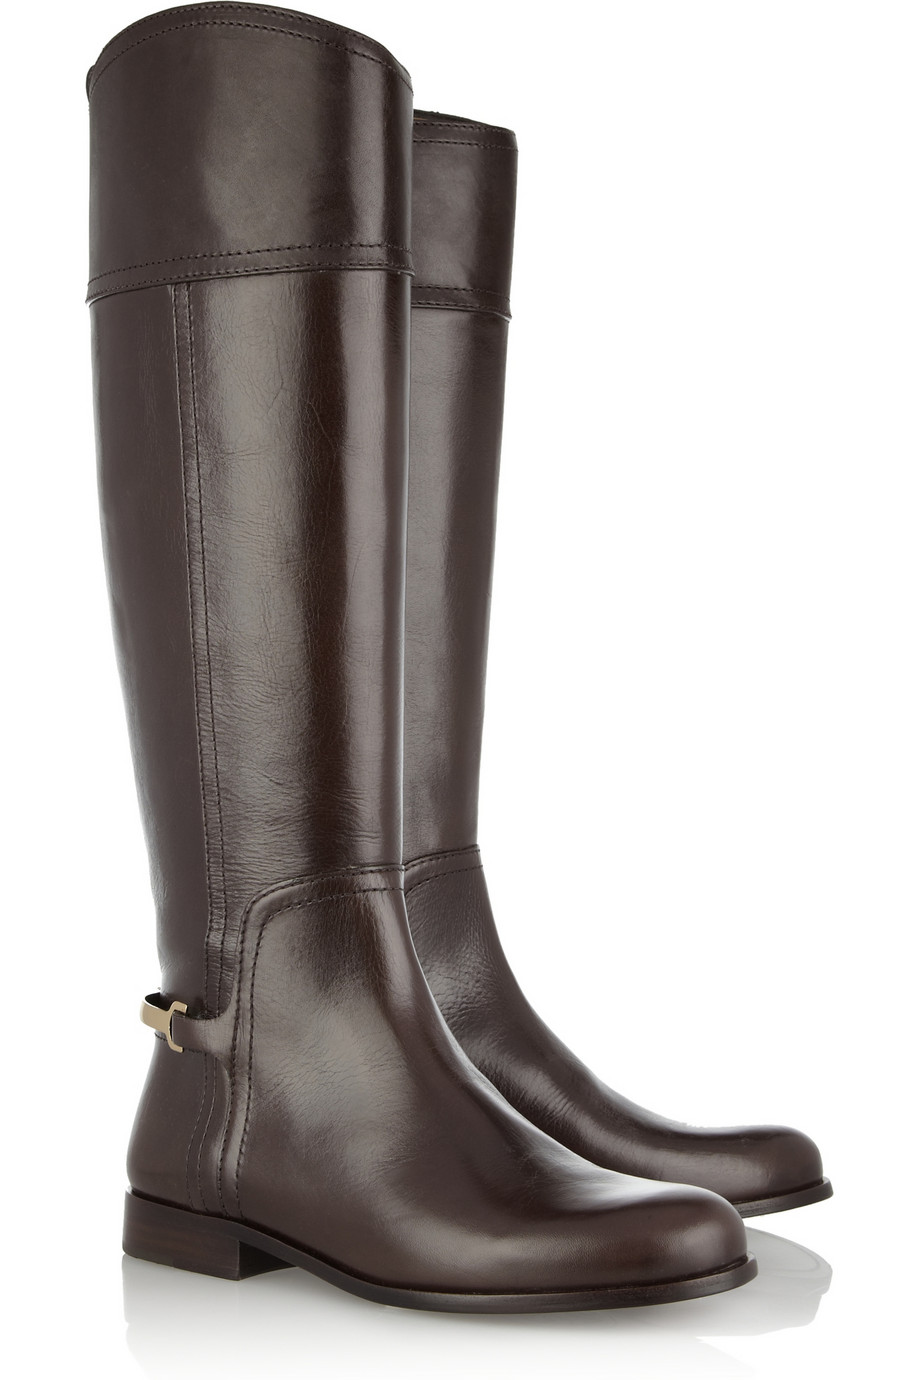 MADE ITALY BROWN LEATHER RIDING BOOTS SIZE 6 N ITALIAN EQUESTRIAN ...